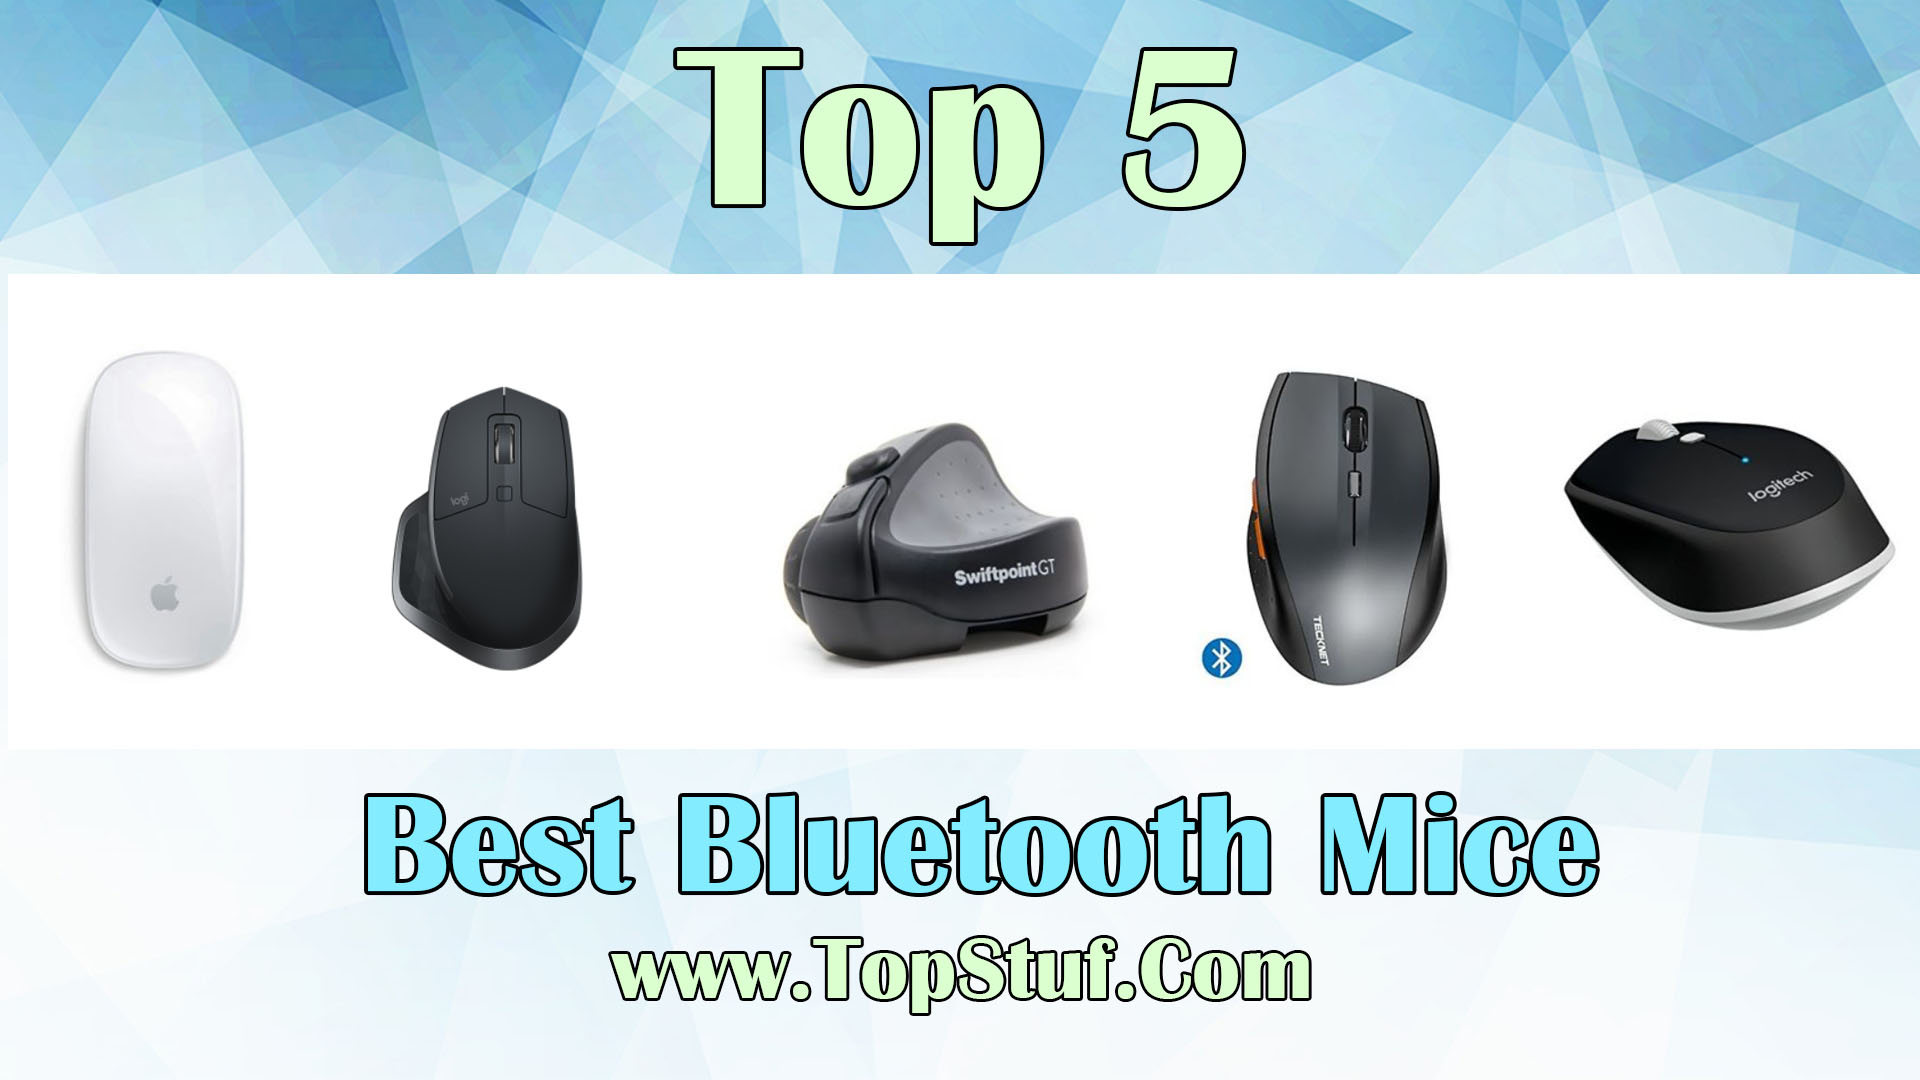 Best Bluetooth Mice